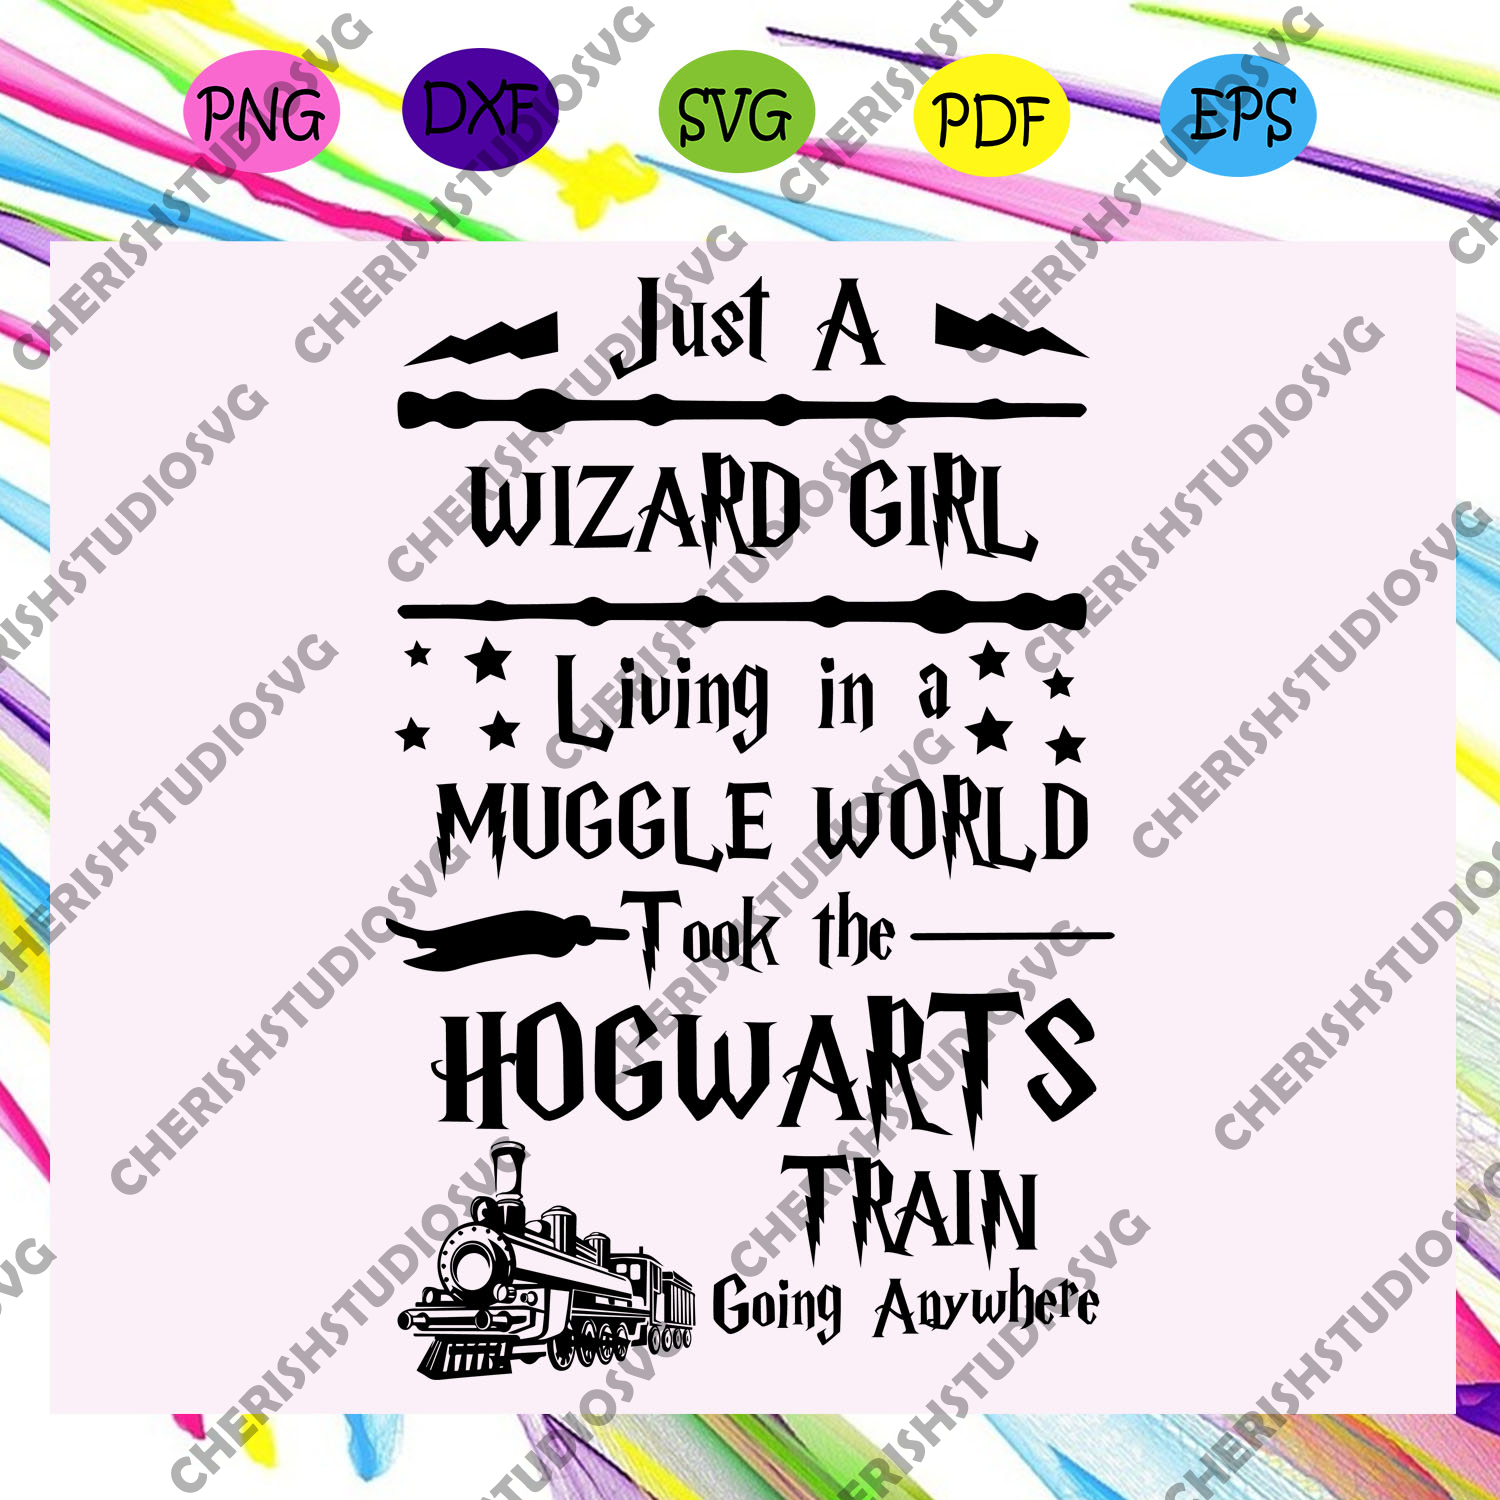 Just a wizard girl living in a muggle world took the hogwarts train going anywhere, harry potter, harry potter svg, harry potter shirt, harry potter gift,trending svg For Silhouette, Files For Cricut, SVG, DXF, EPS, PNG Instant Download